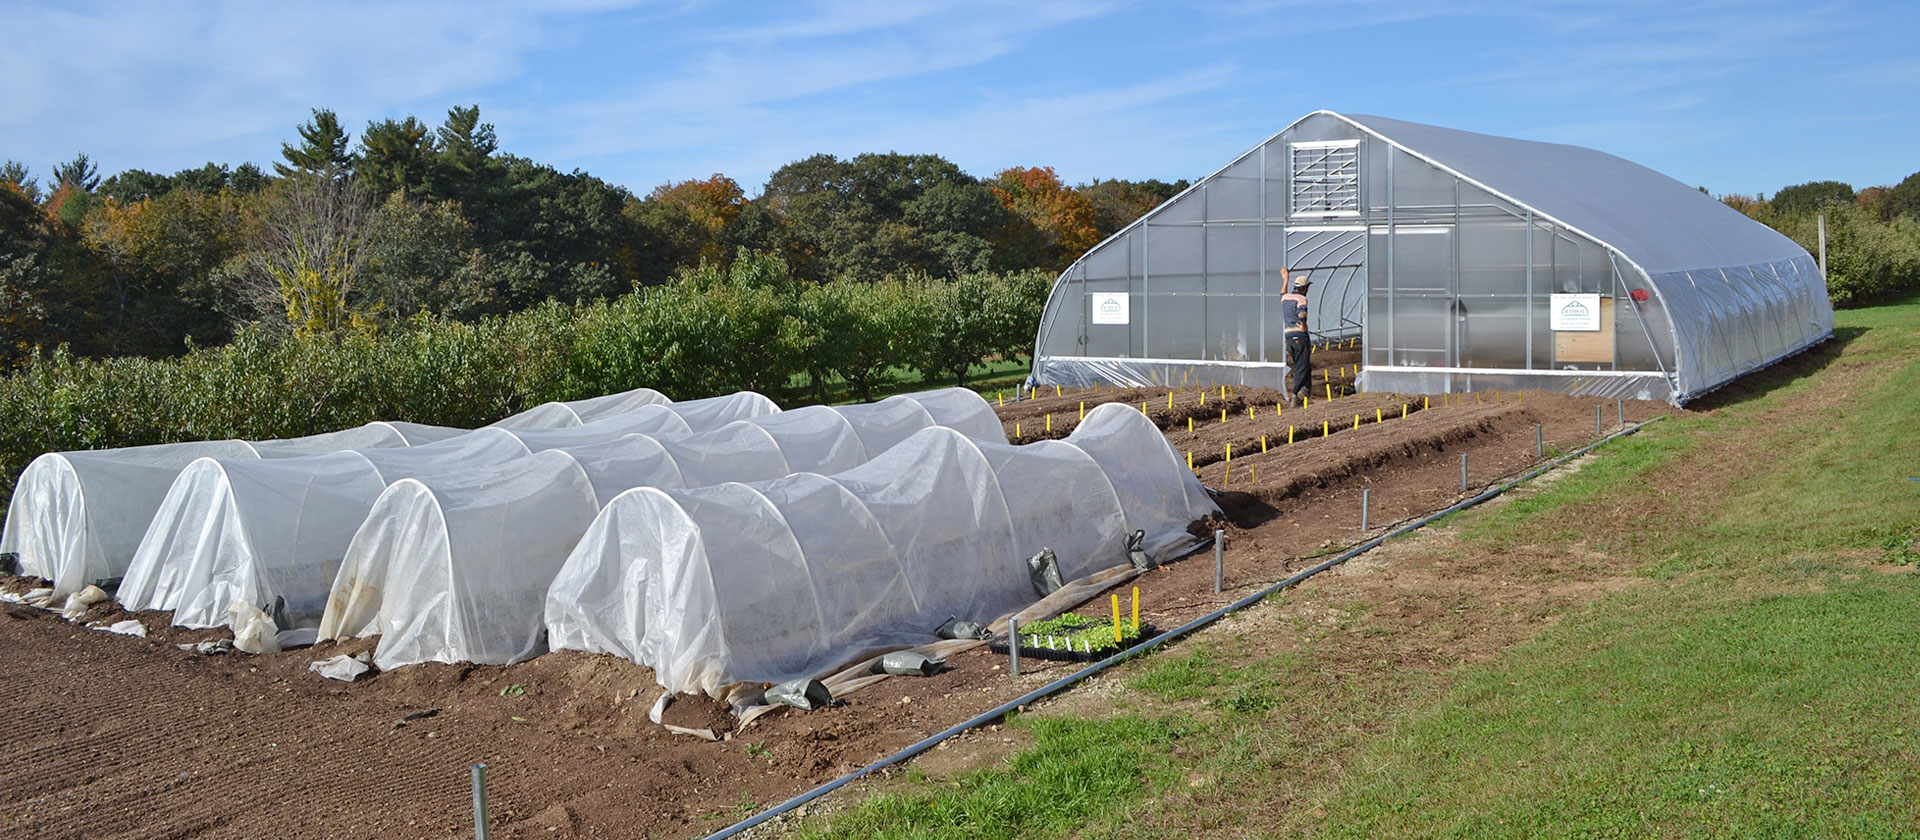 Rolling Thunder greenhouses by Rimol